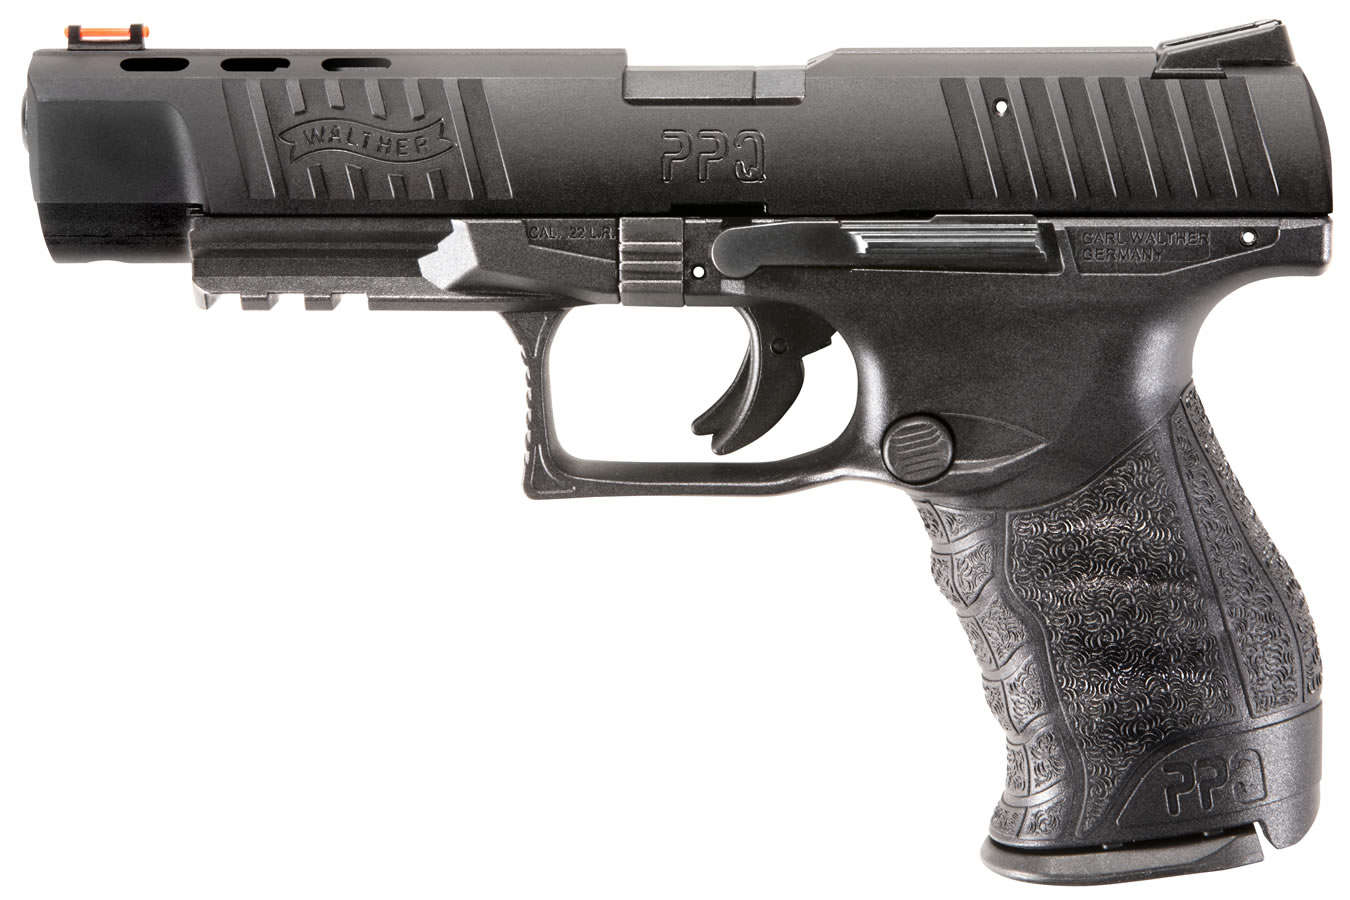 PPQ 22 22LR WITH 5-INCH BARREL (LE)